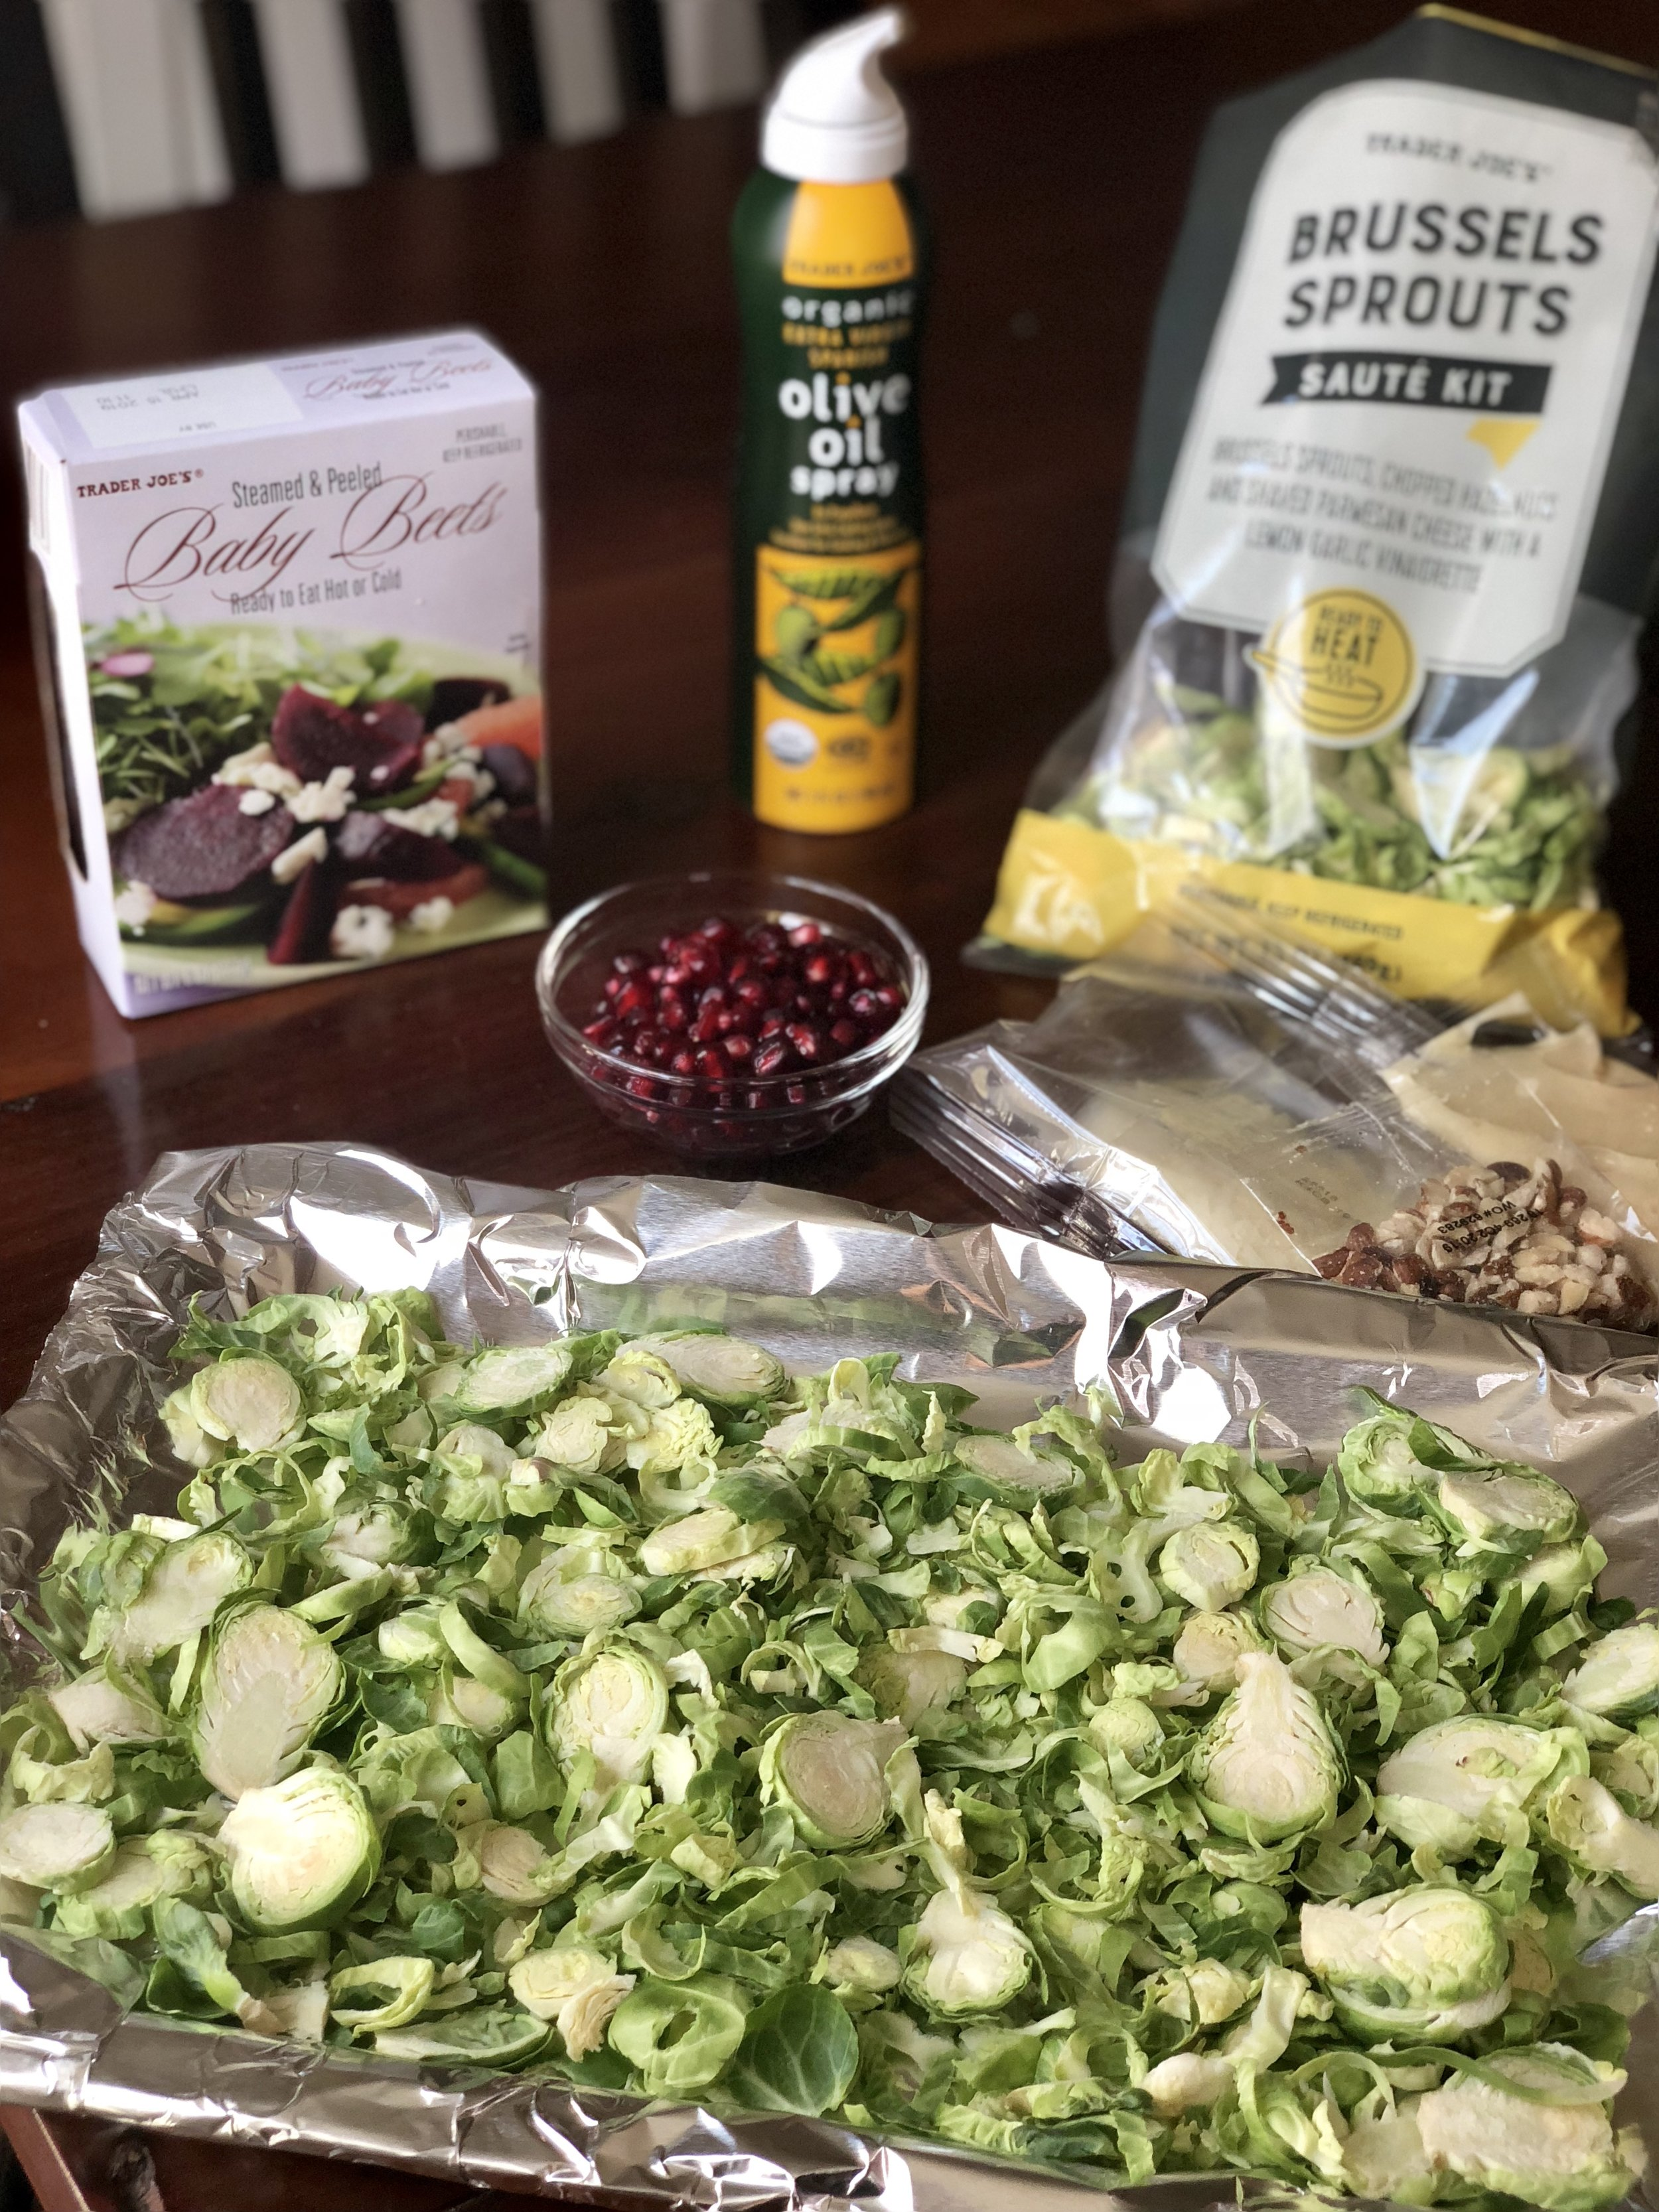 AAY Nutrition Recipe Trader Joe's Roasted Brussels Sprouts with Baby Beets & Pomegranate Seeds